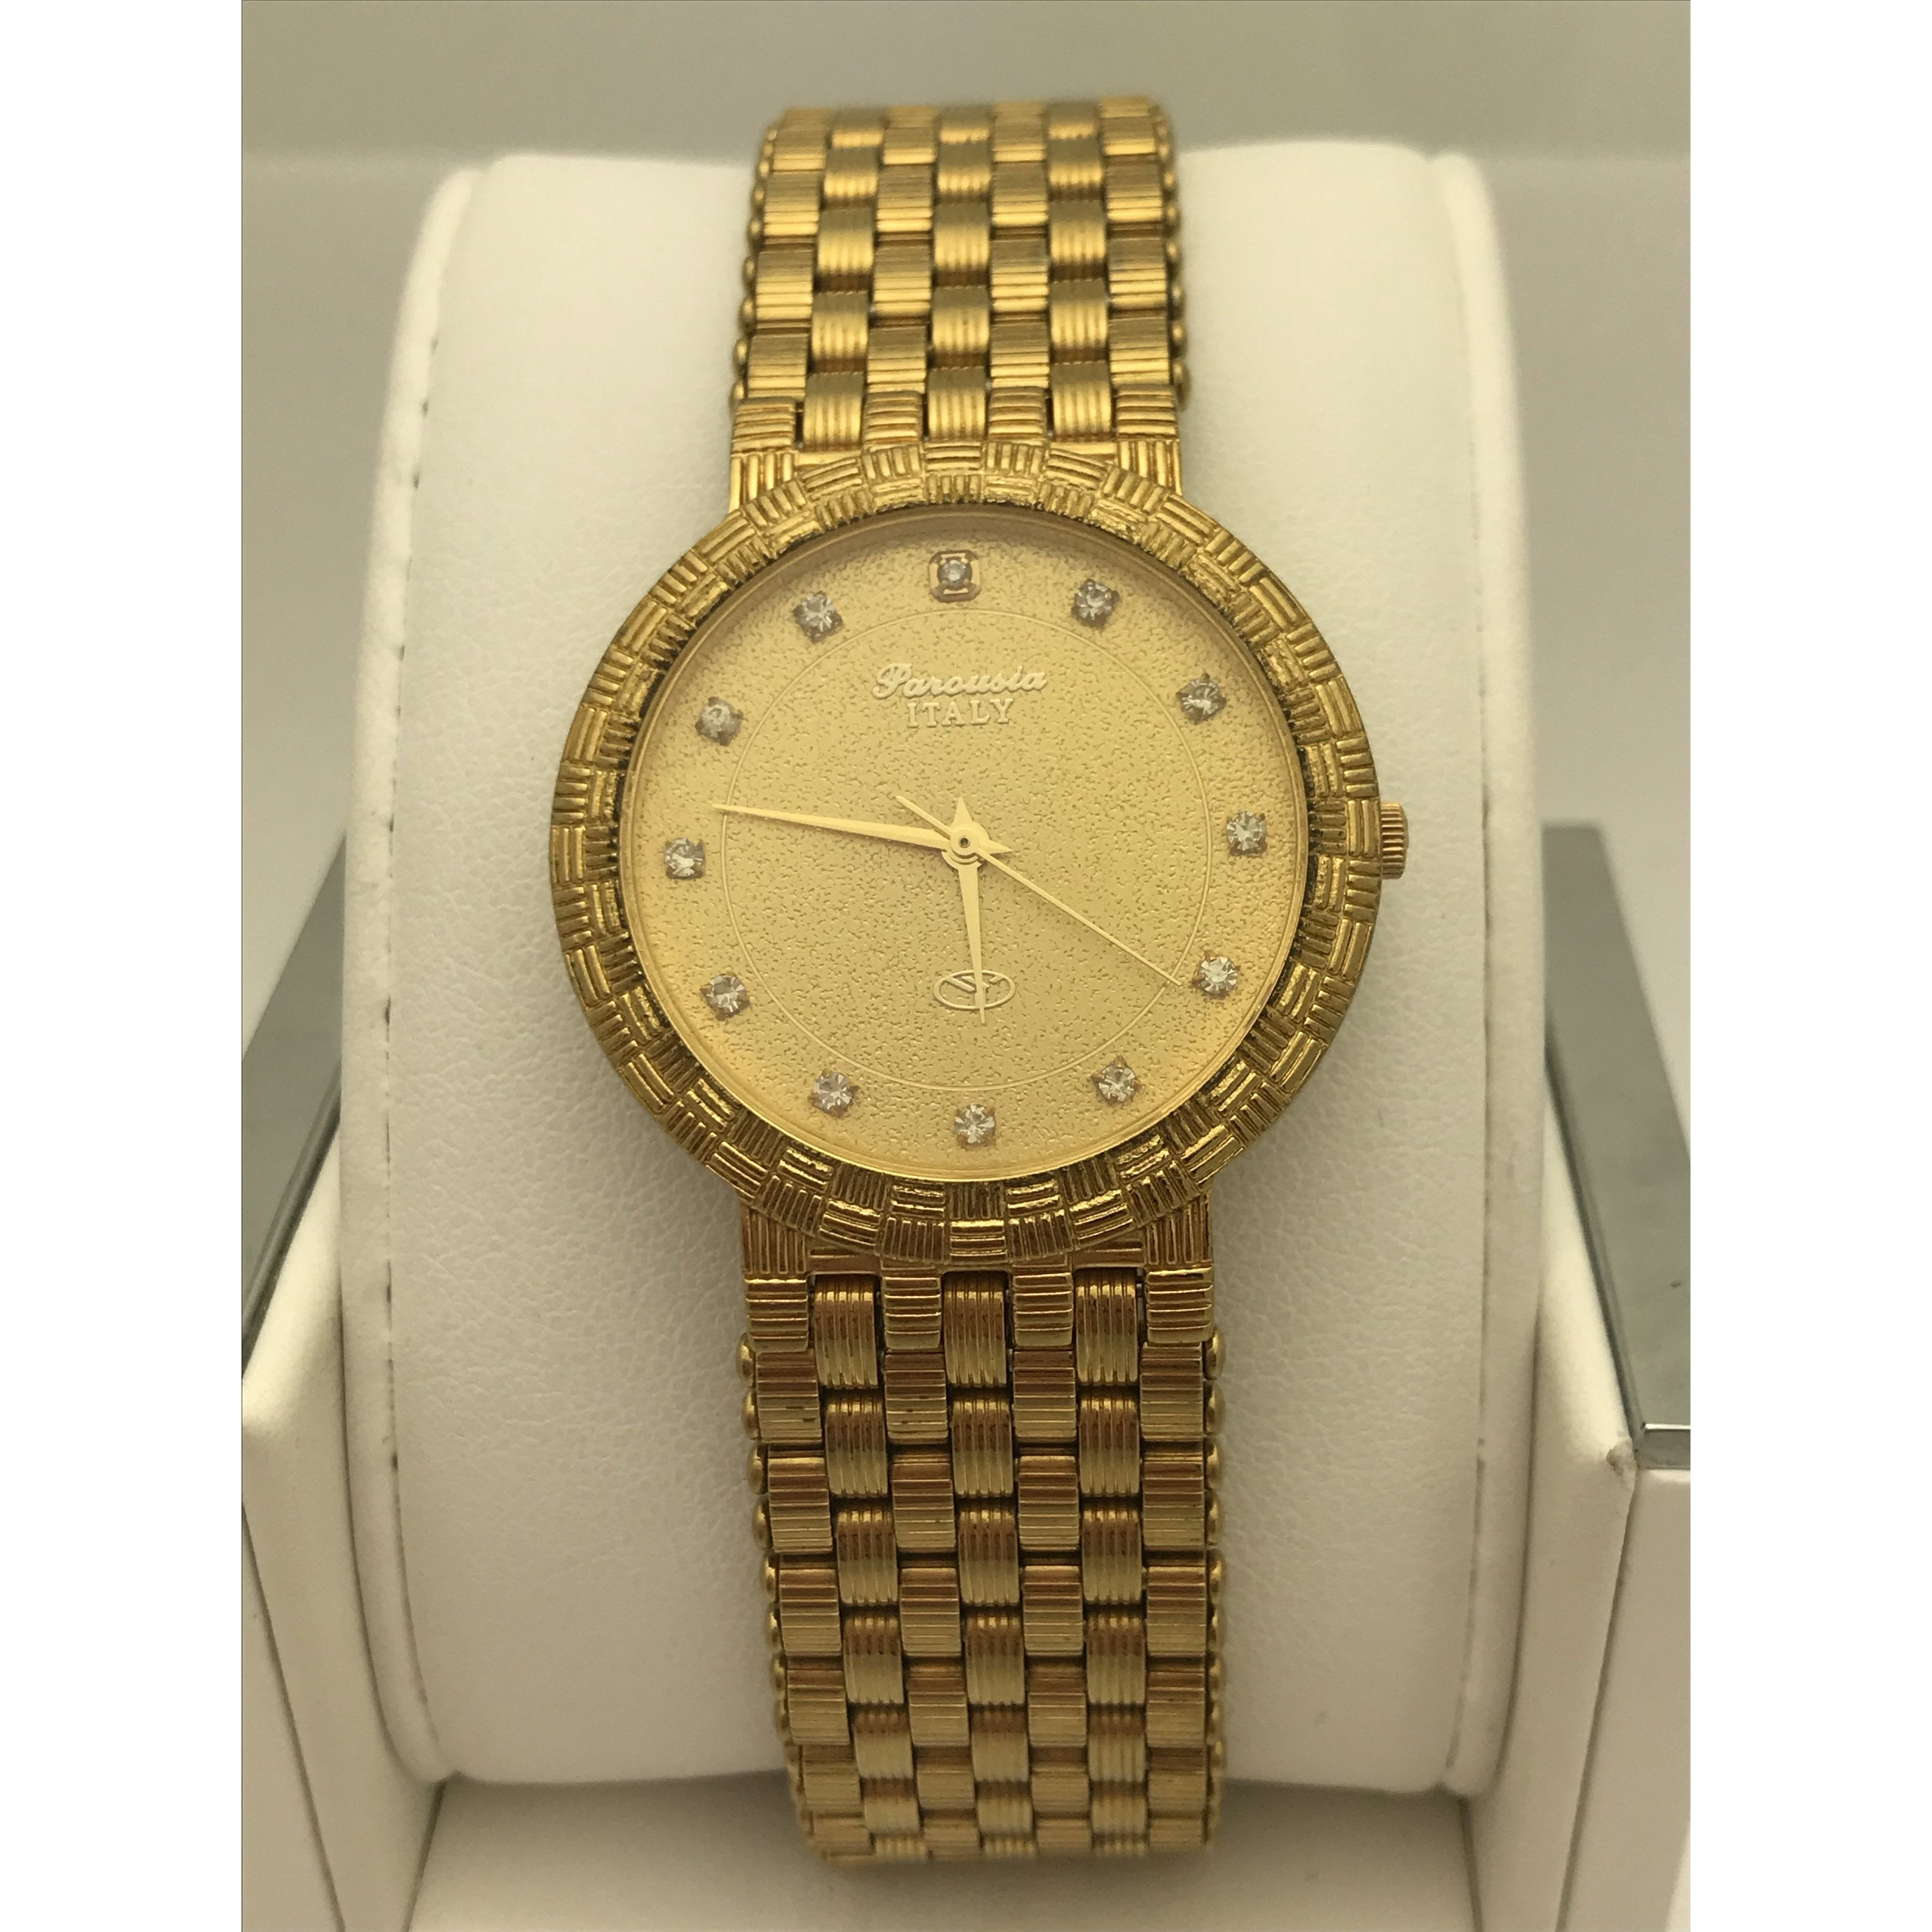 Parousia Italy Unisex Gold Tone Dial Gold Tone Stainless Steel Watch P2044M